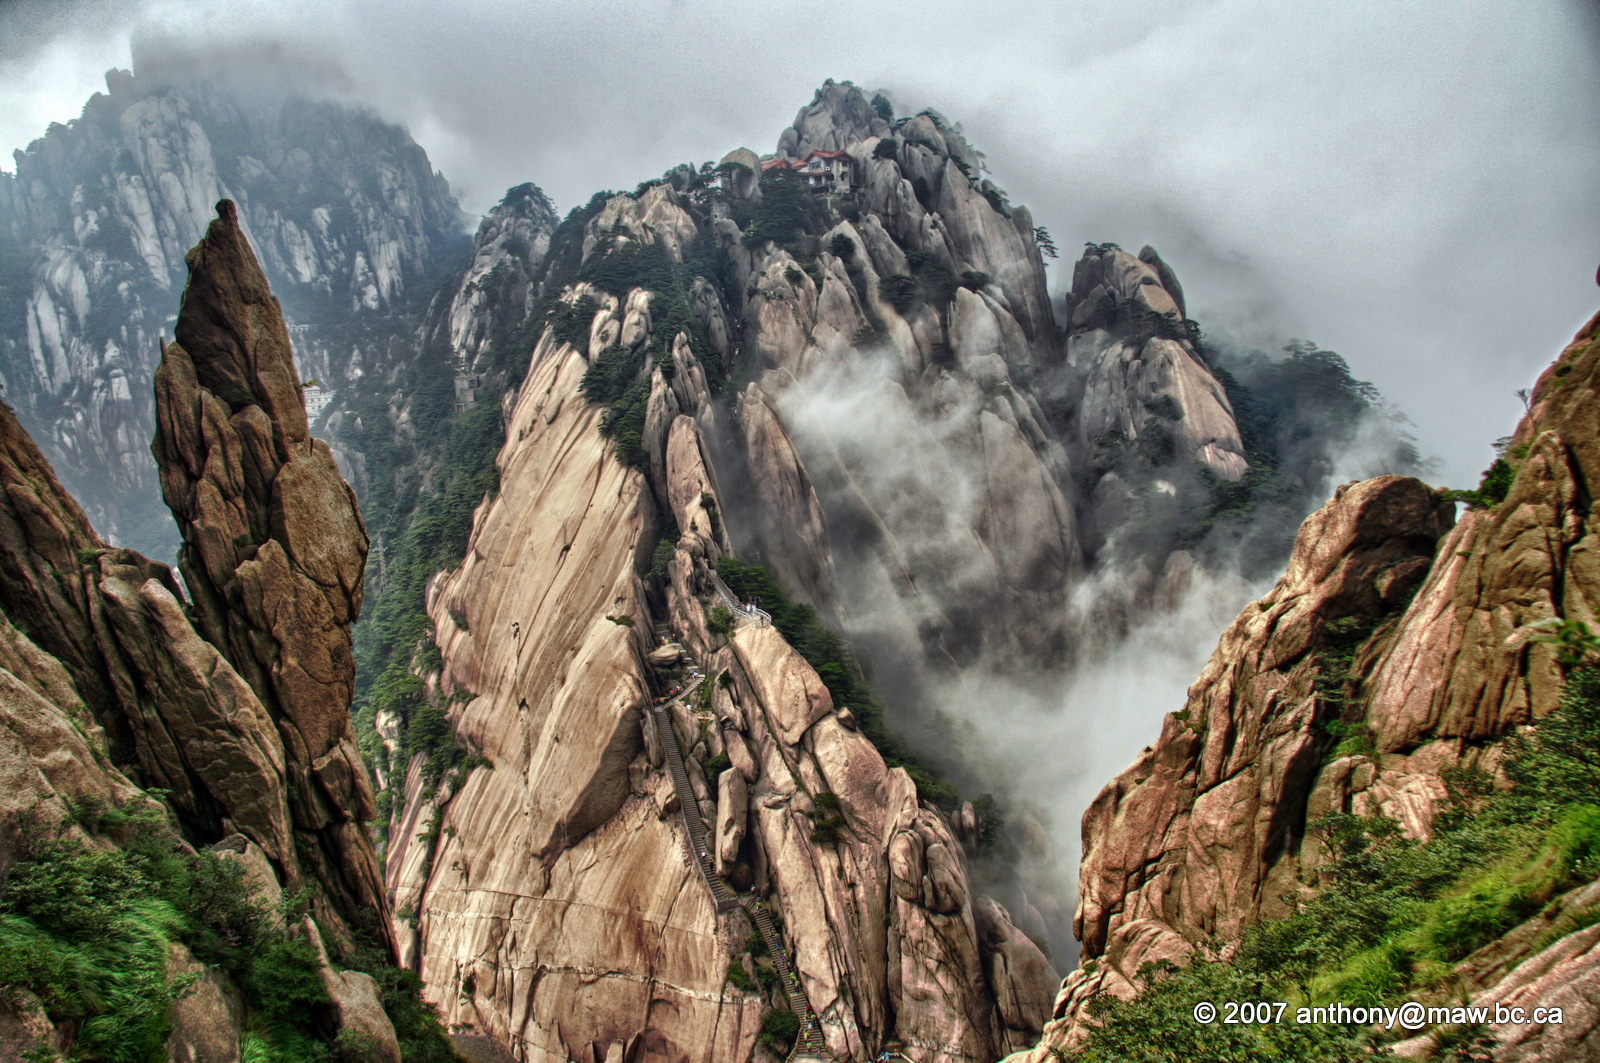 China - Mount Huangshan National Park. china, travel, mountains, tourism, misty, clouds, stairs, heaven, hiking, climbing. buy photo